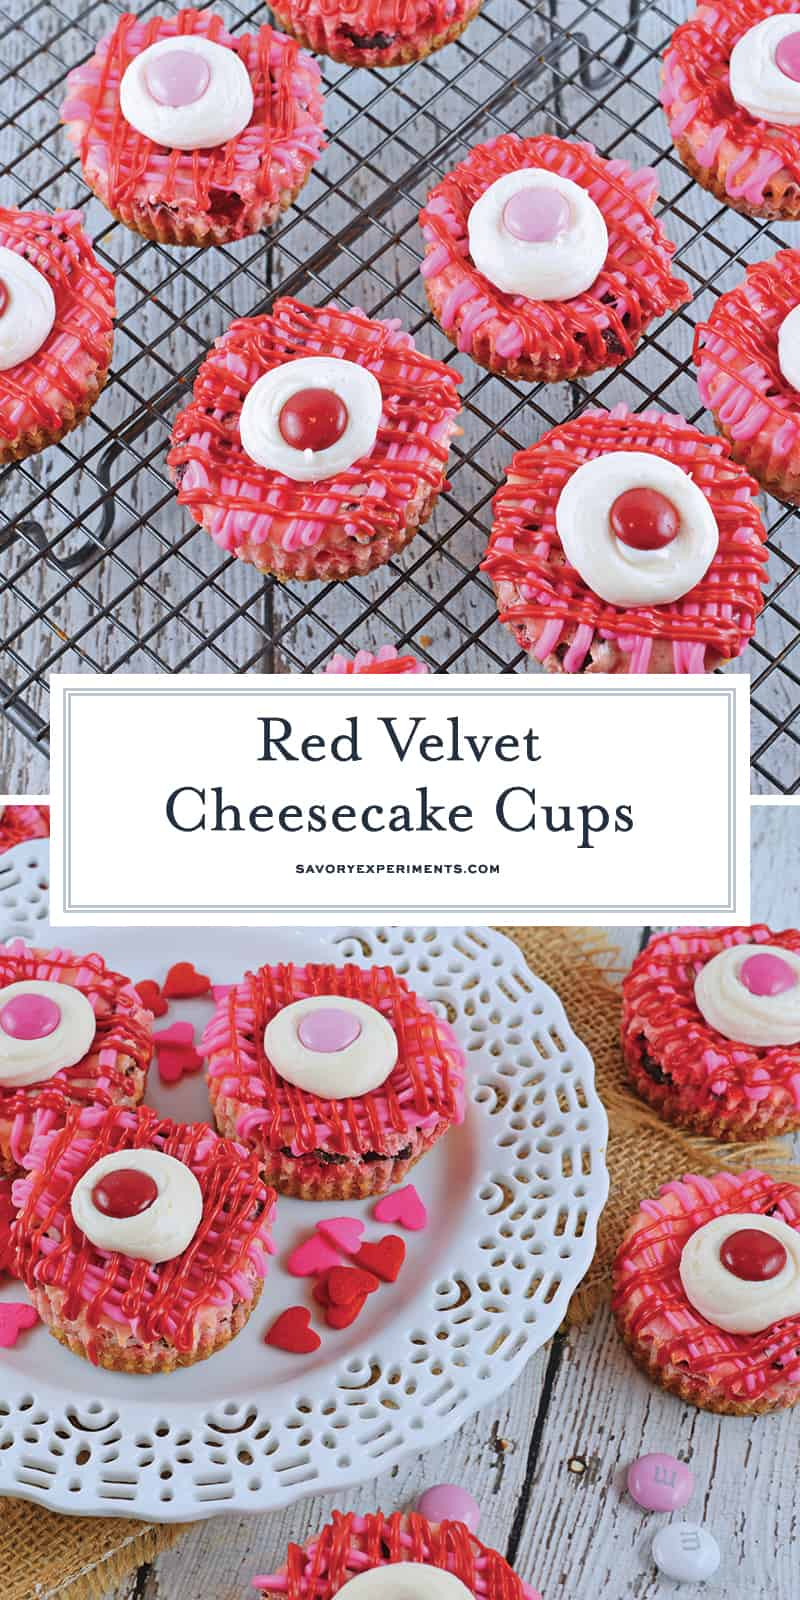 Red Velvet Cheesecake Cups are mini bites of creamy cheesecake with a vanilla cookie crust. Topped with a drizzle of chocolate, cream cheese frosting and red velvet M&Ms. #redvelvet #cheesecakecups www.savoryexperiments.com